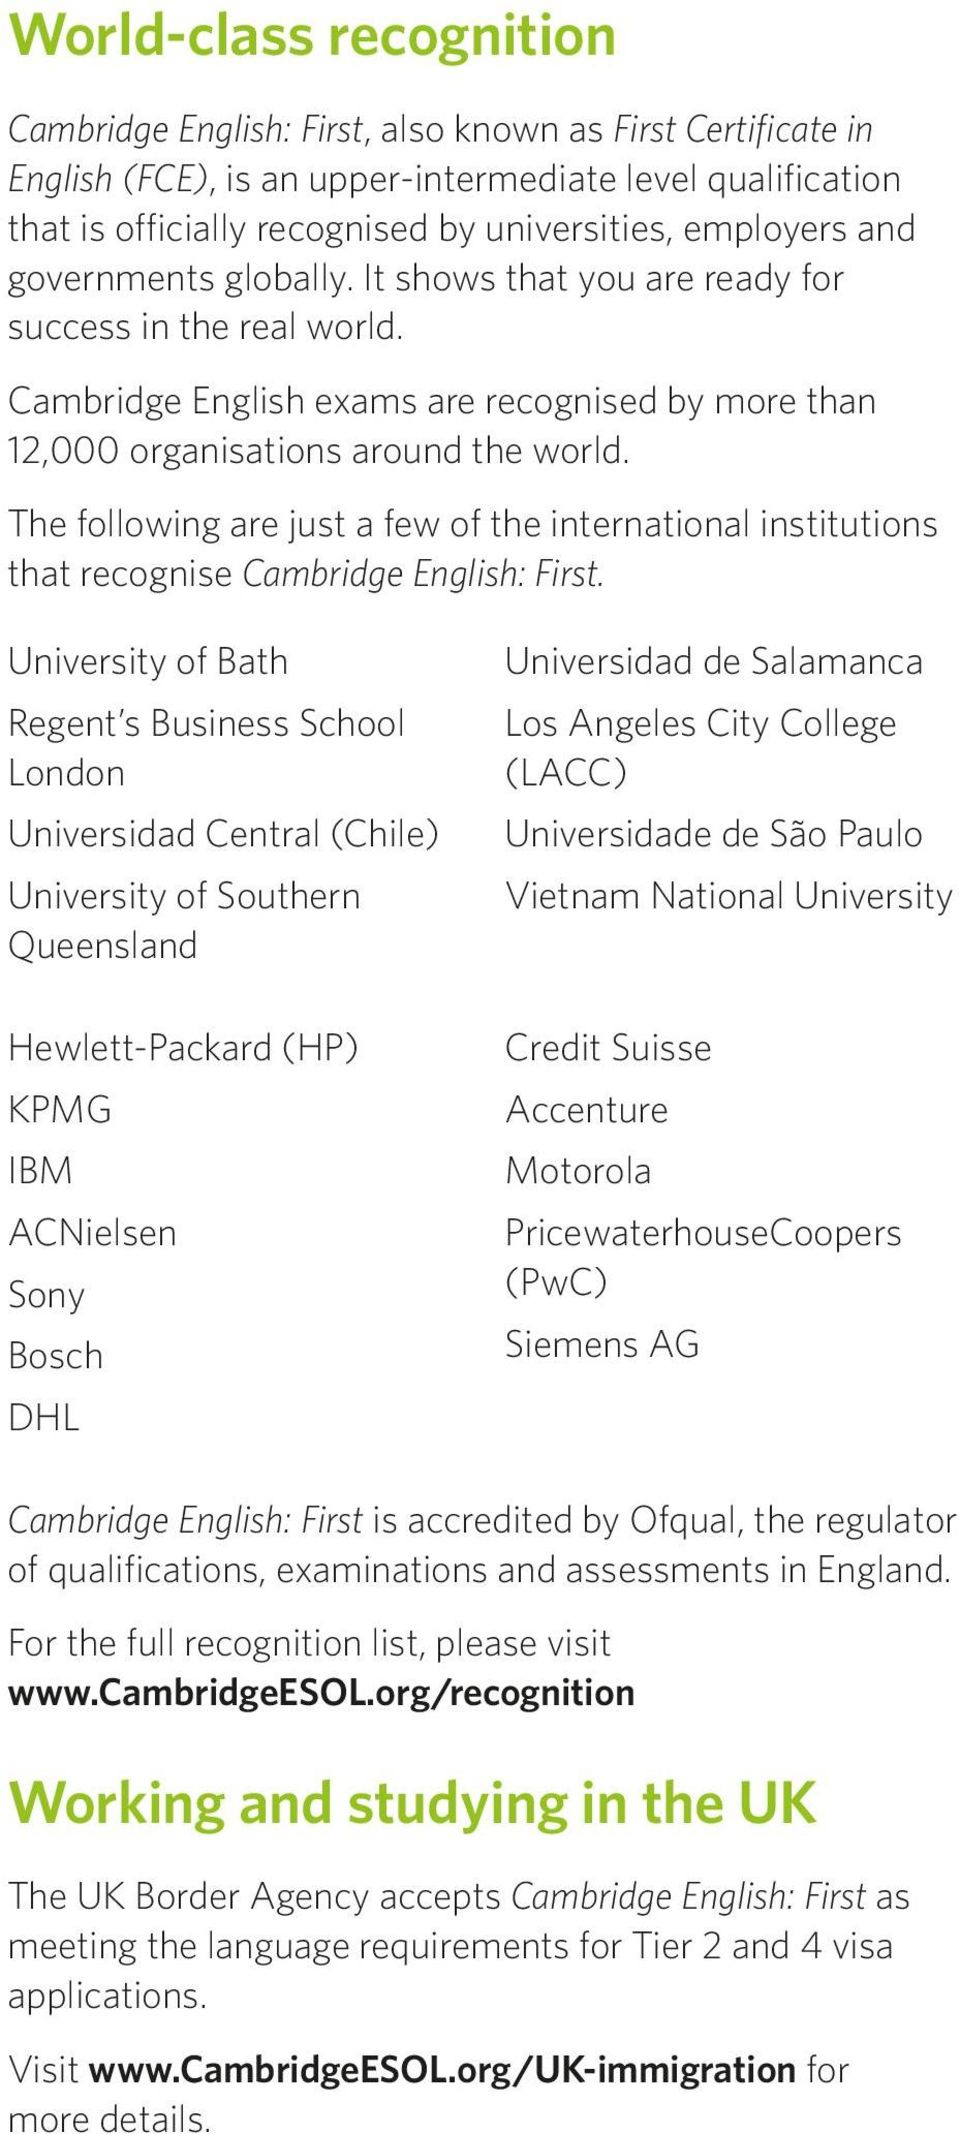 The following are just a few of the international institutions that recognise Cambridge English: First.